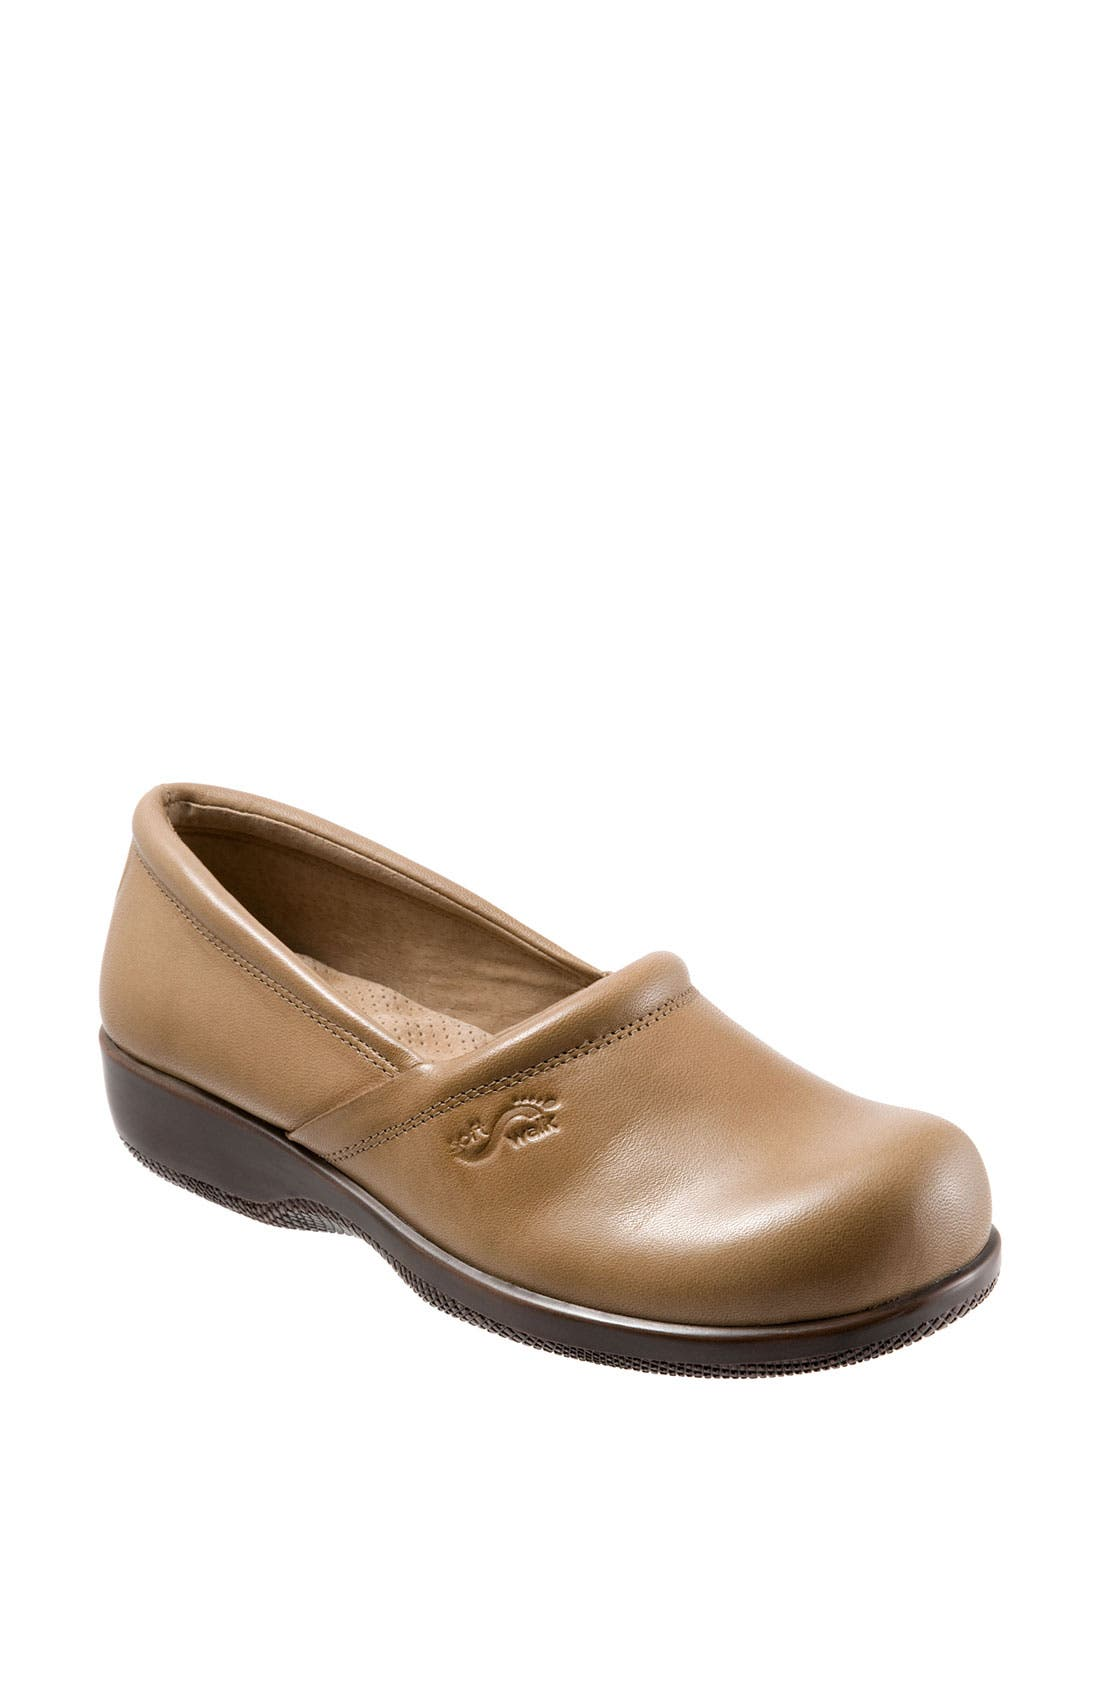 A low-heeled A-line slip-on in wonderfully soft kidskin with orthopedically designed Mogul construction for shock absorption and cushioned support. Style Name: Softwalk \\\'Adora\\\' Slip-On. Style Number: 35832 1. Available in stores.